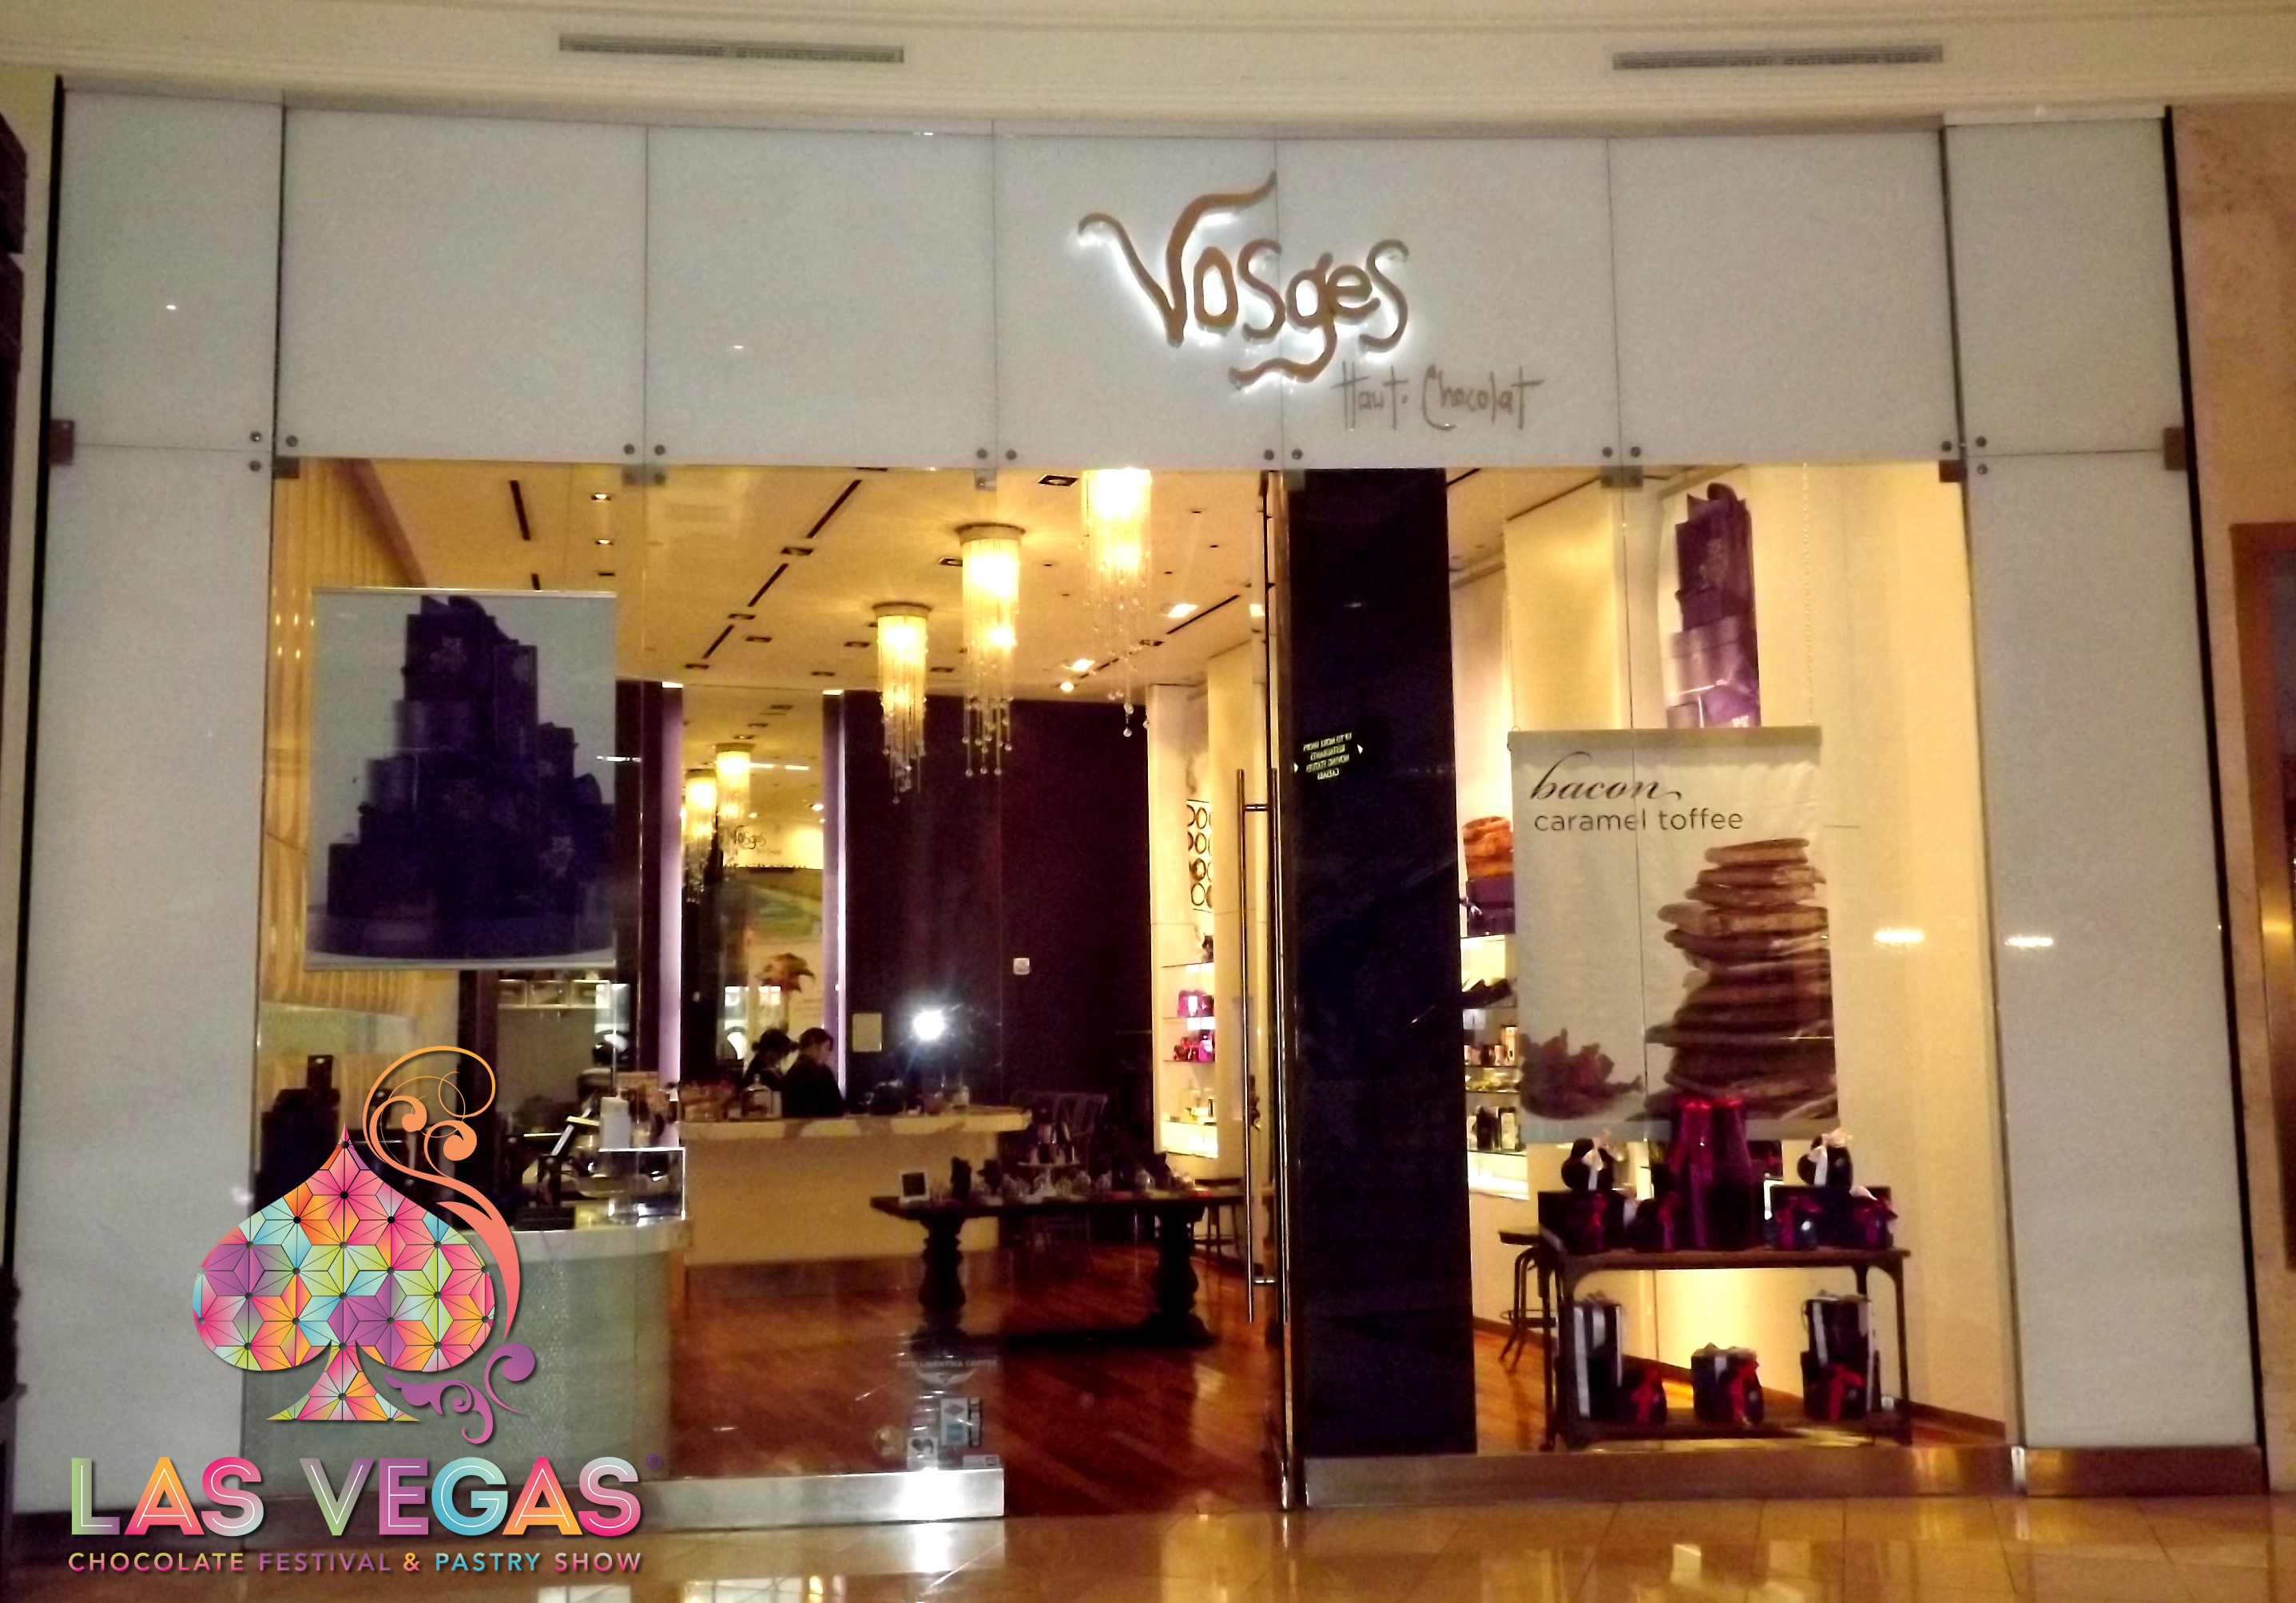 Vosges Haut Chocolat at the Las Vegas Chocolate Festival - Katrina ...